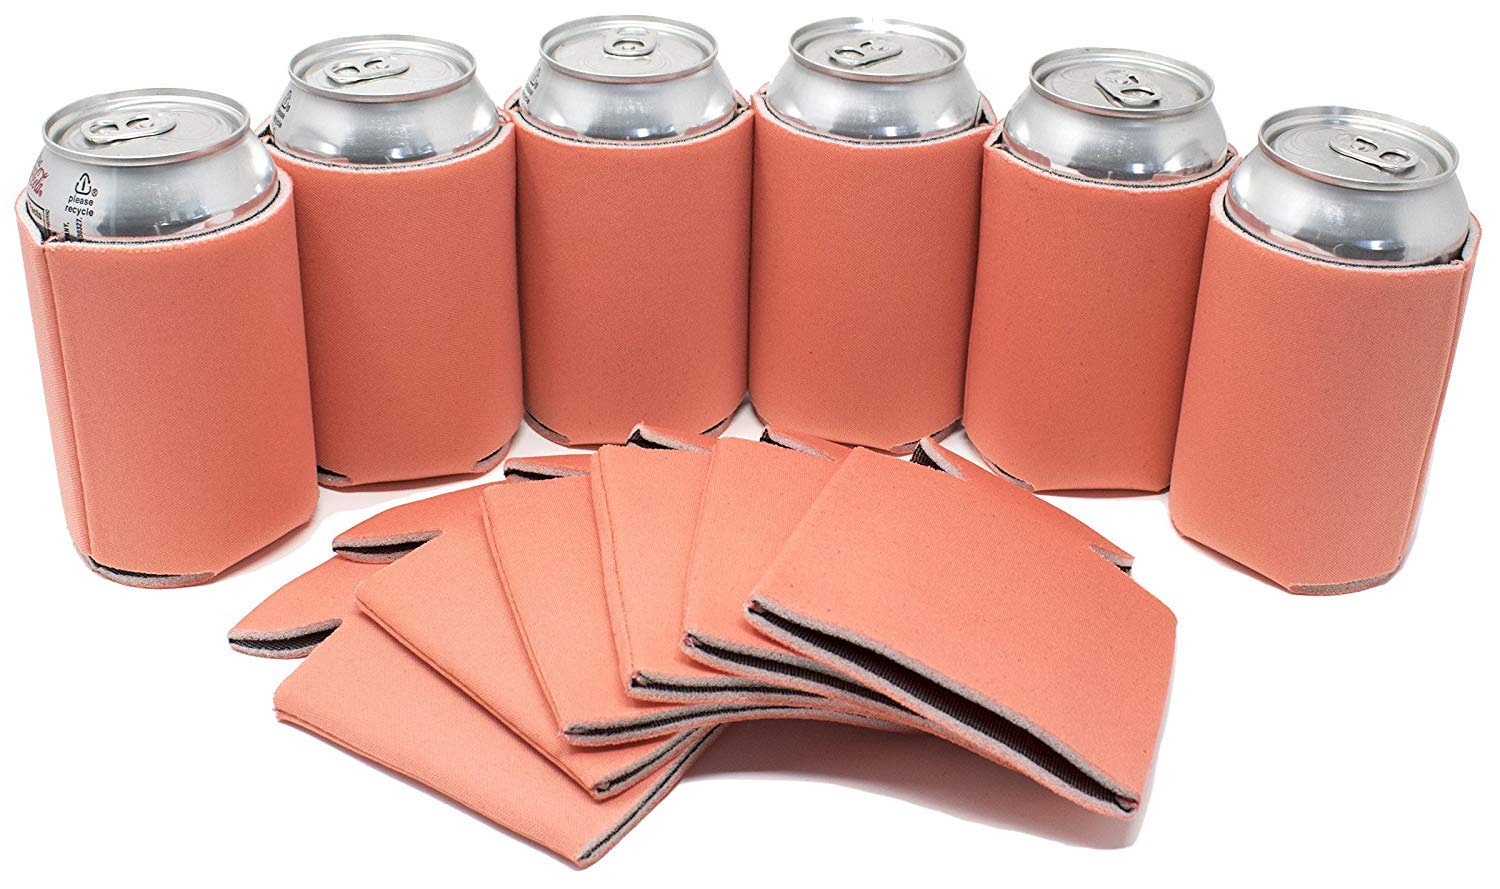 TahoeBay 12 Blank Beer Can Coolers, Plain Bulk Collapsible Soda Cover Coolies, DIY Personalized Sublimation Sleeves for Weddings, Bachelorette Parties, Funny HTV Party Favors (Coral, 12)